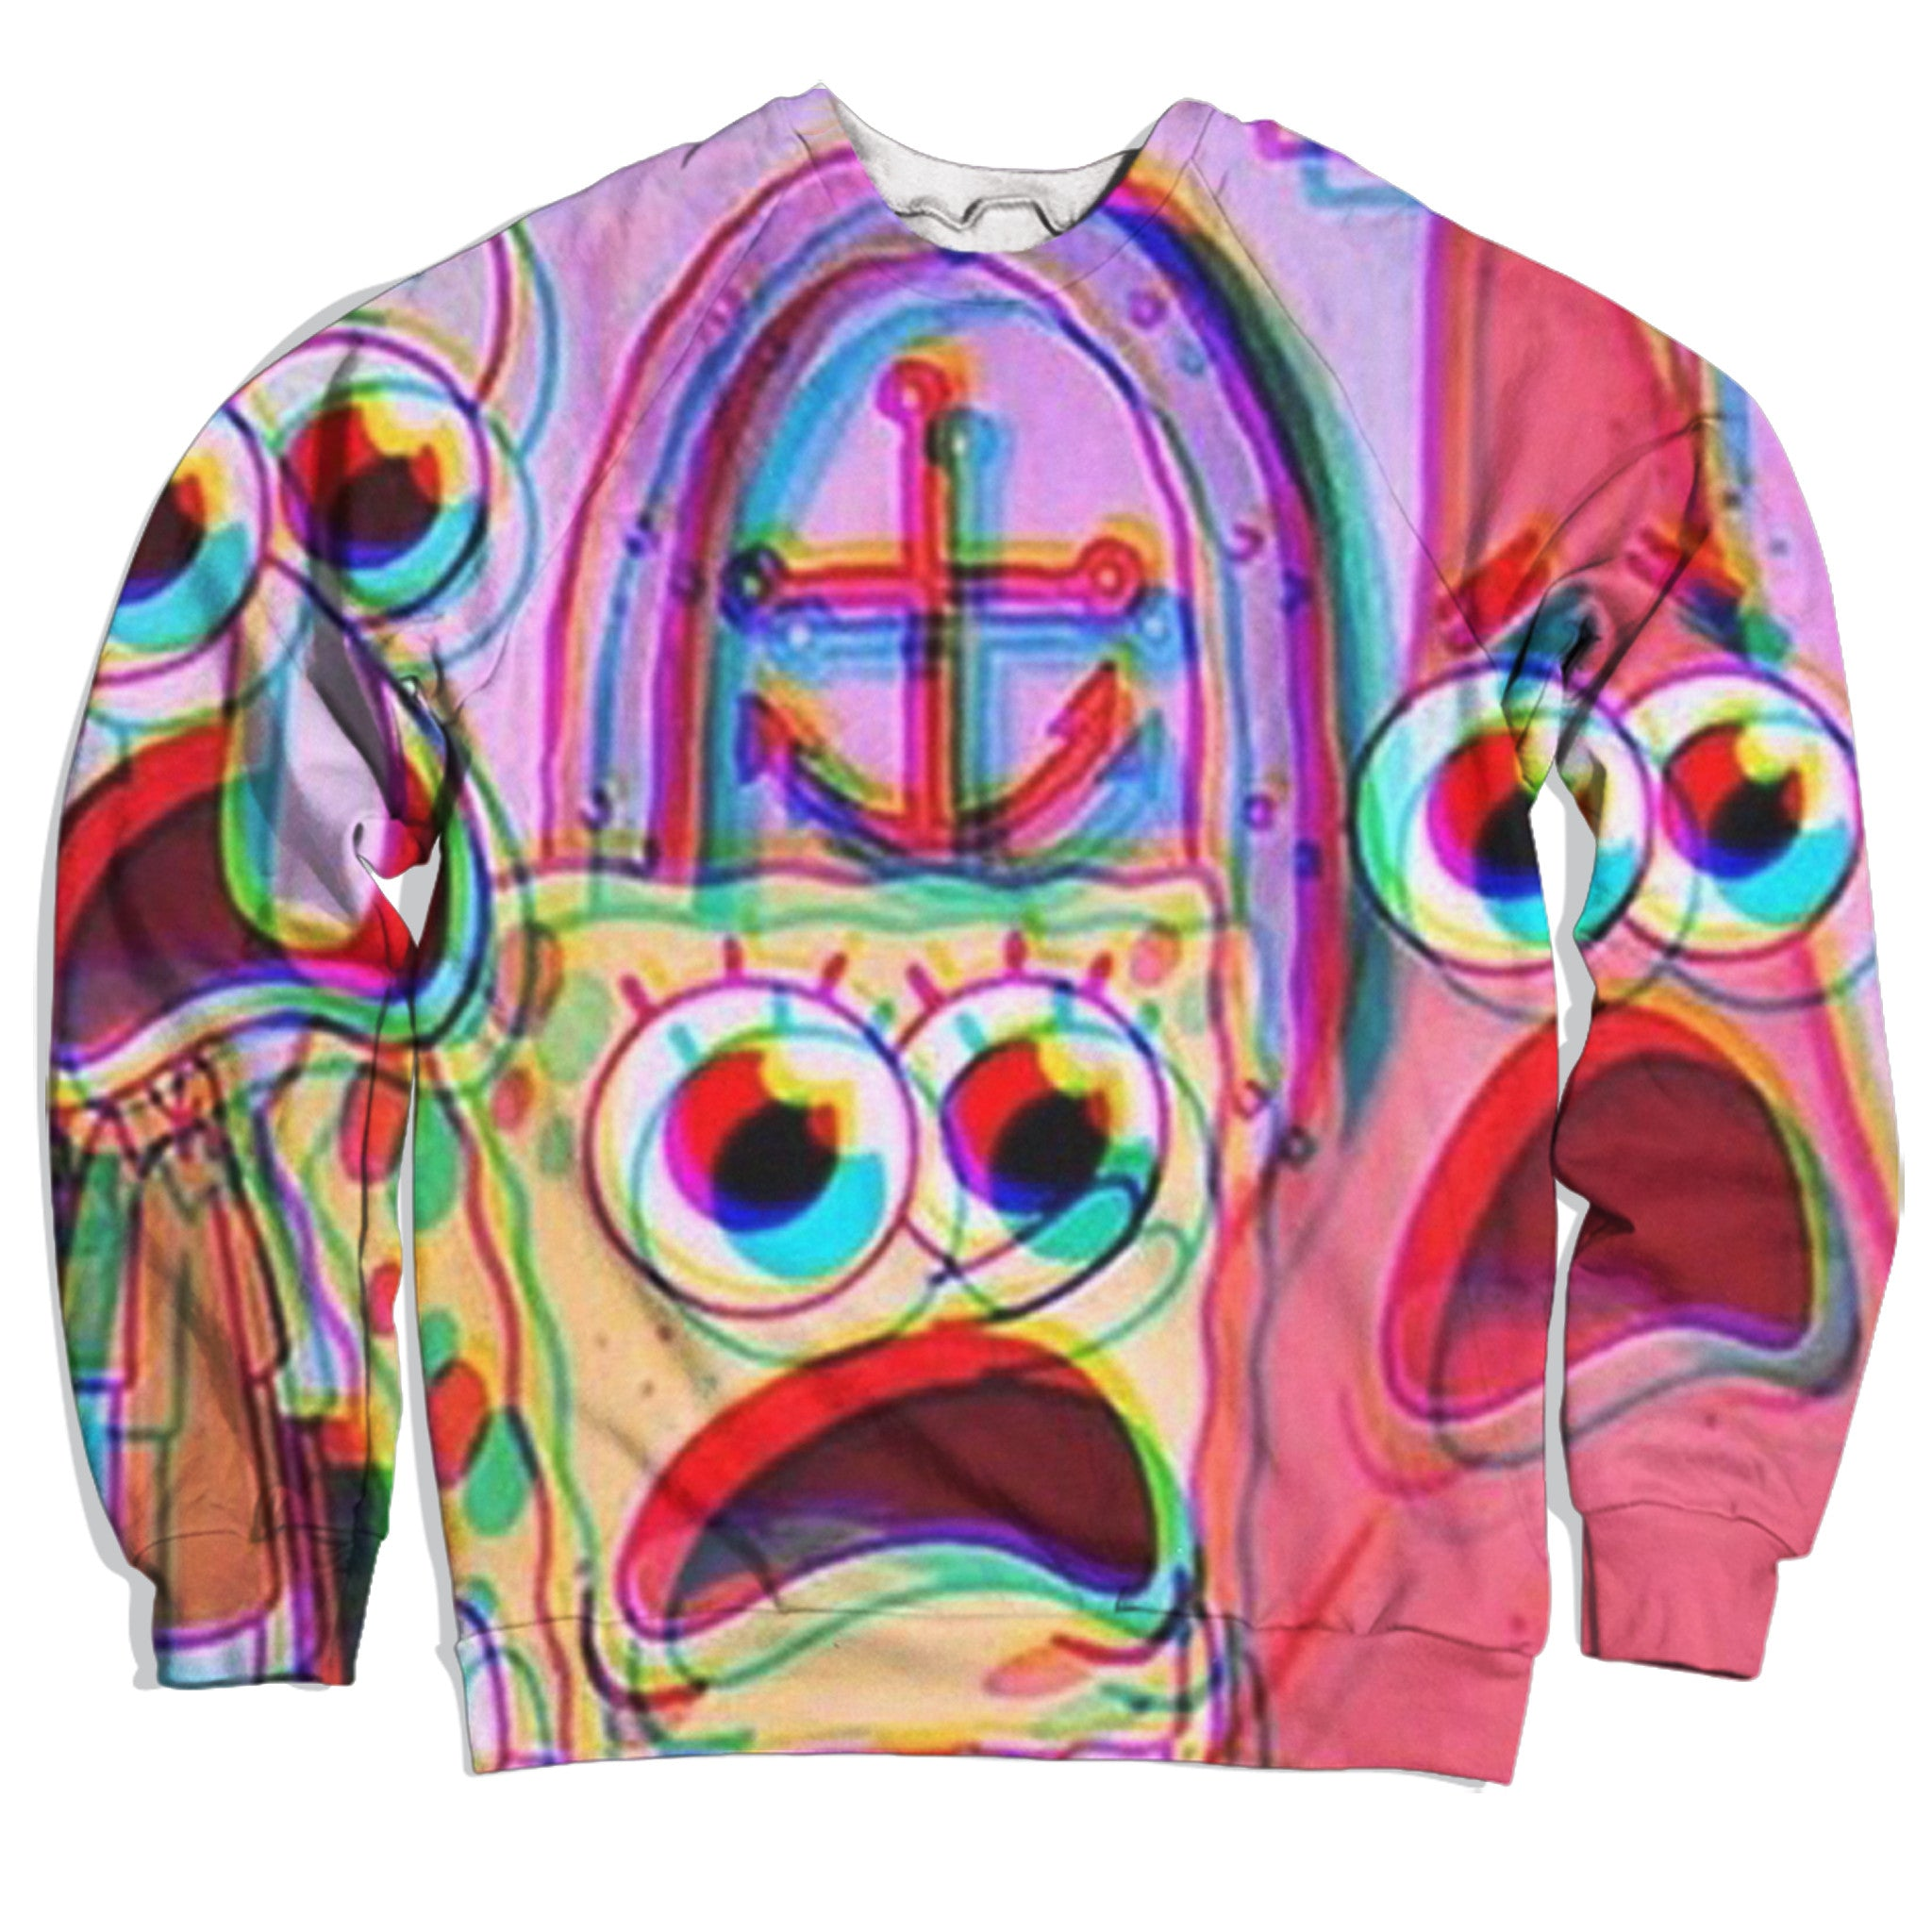 Shocked Buddies Sweatshirt